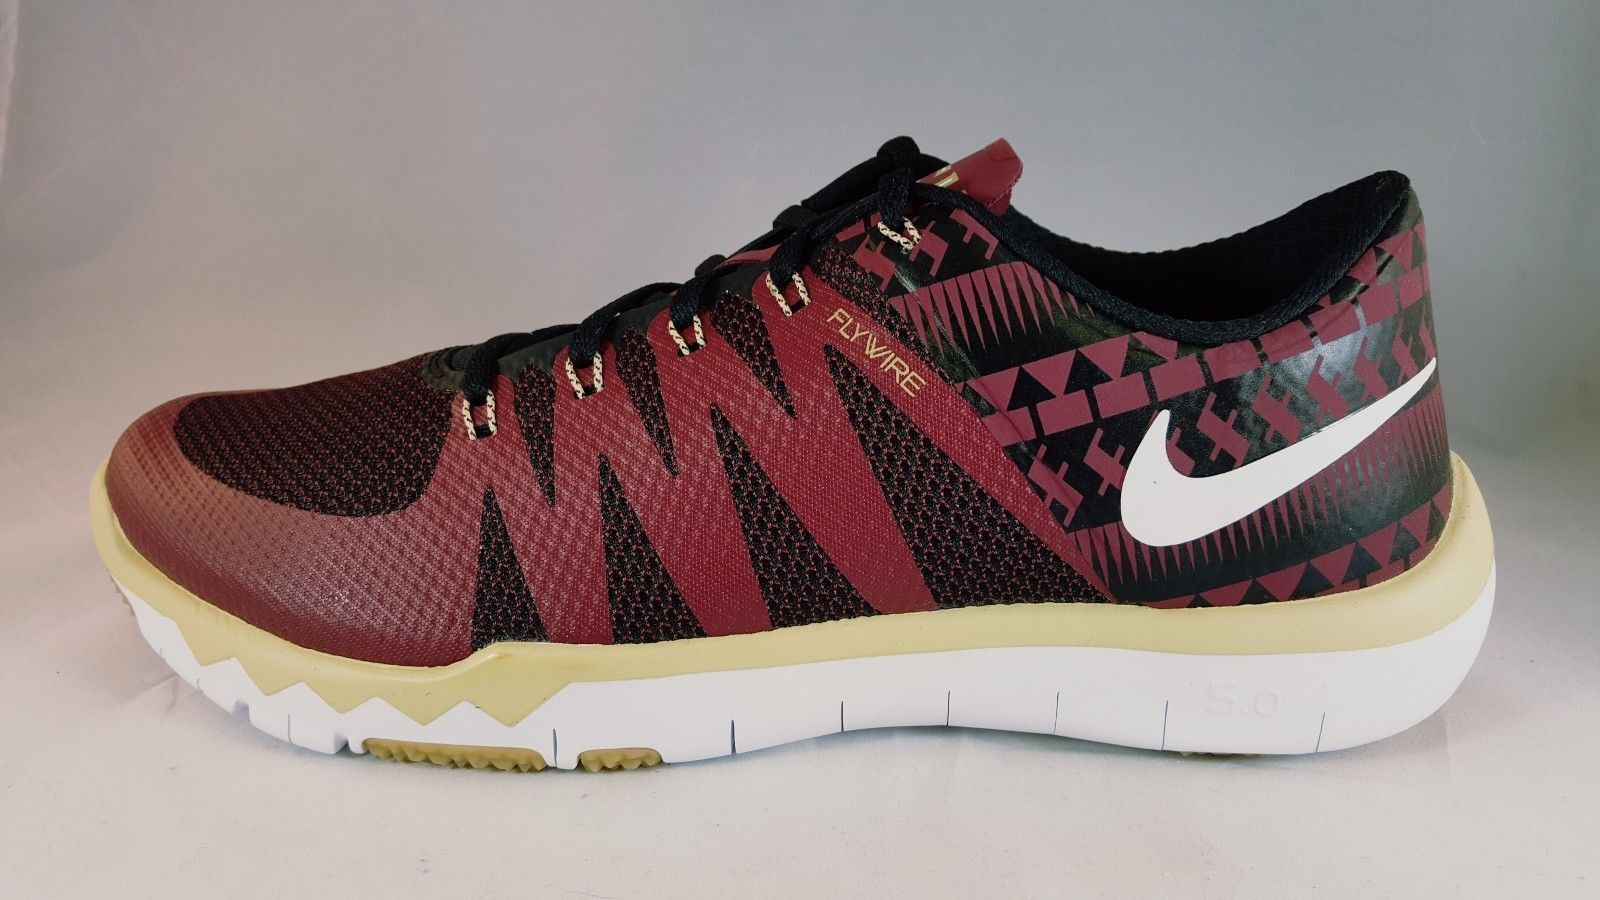 Nike Free TR 5.0 V6 AMP Florida State Mens Training shoes 723939 706 Size 10.5